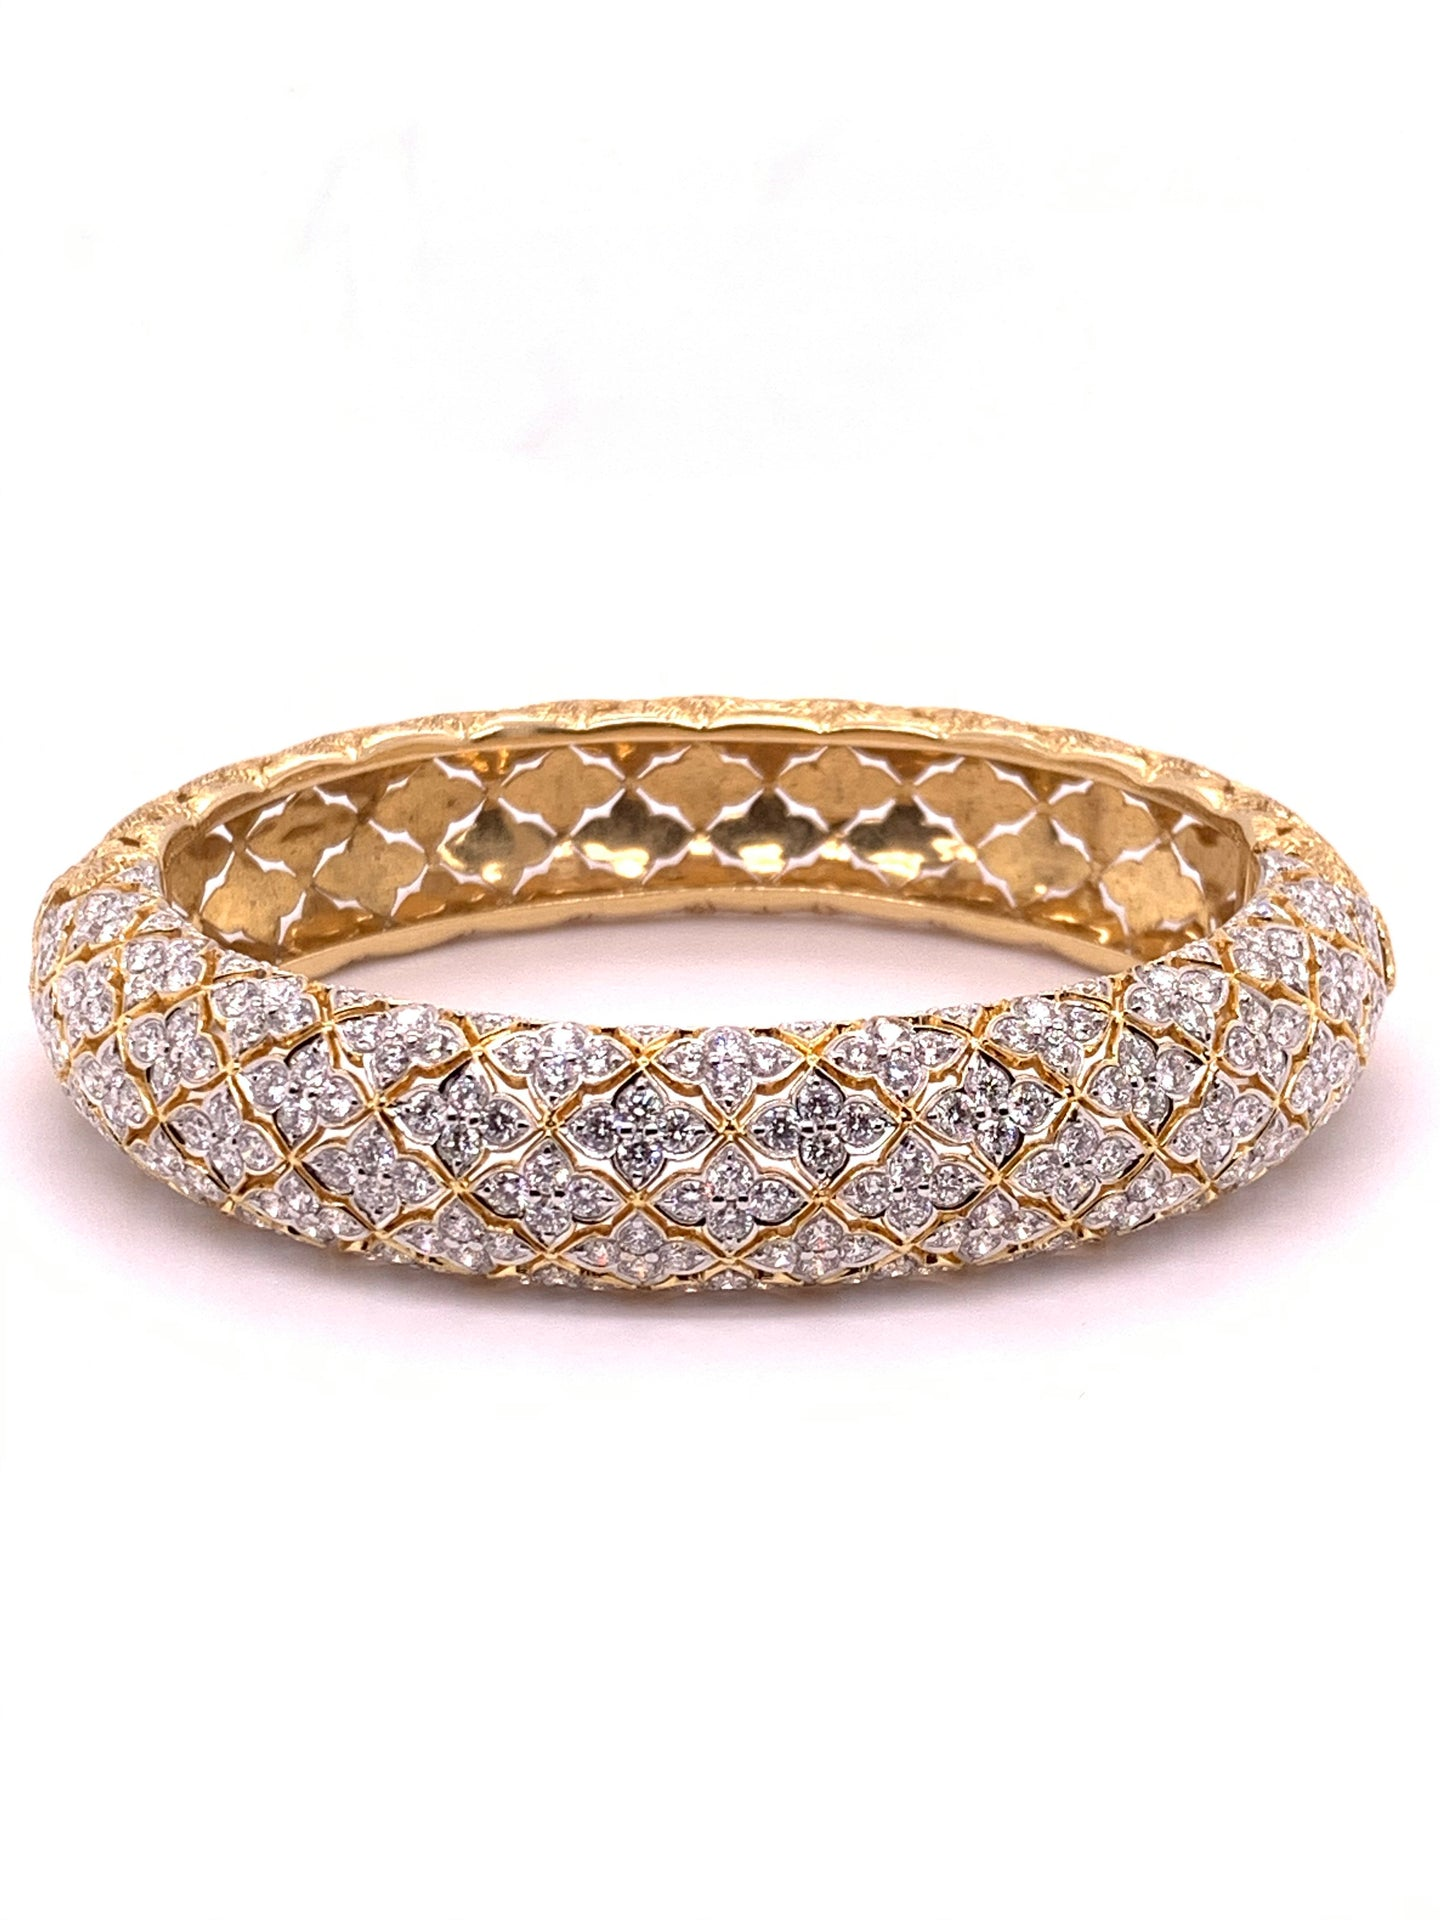 18K Yellow Gold Round Diamond Bangle